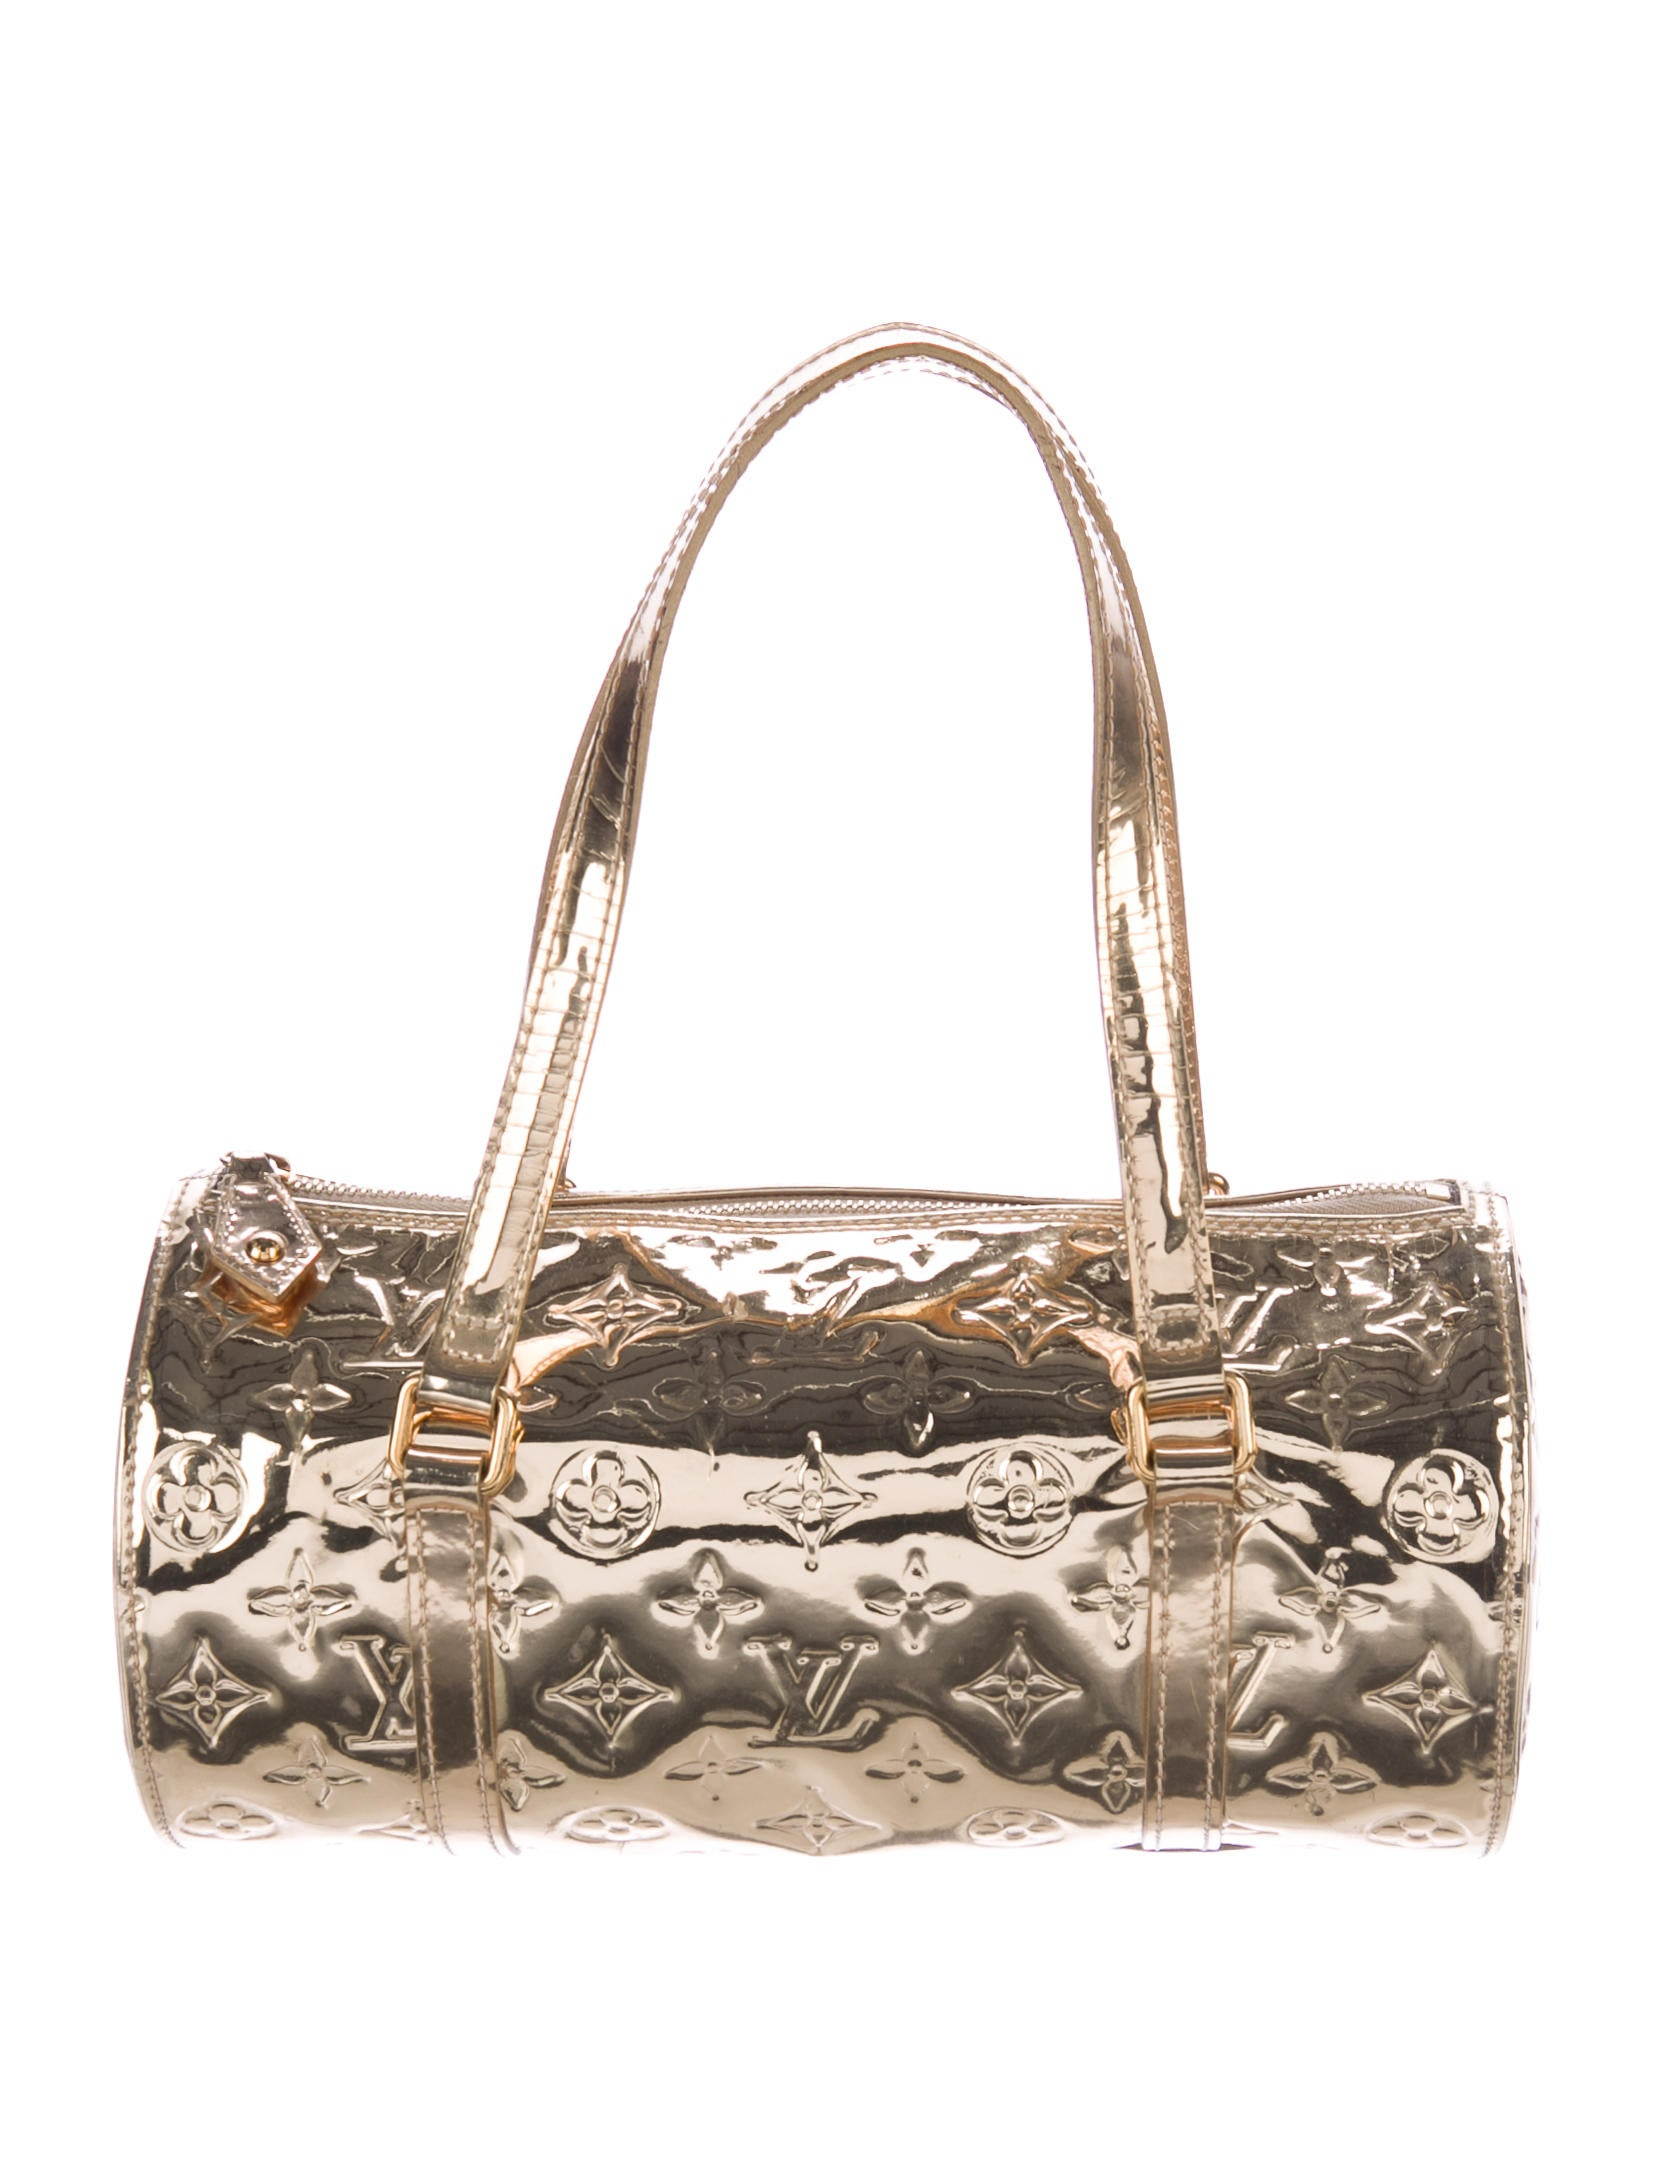 Louis vuitton miroir papillon bag handbags lou134091 for Miroir louis vuitton